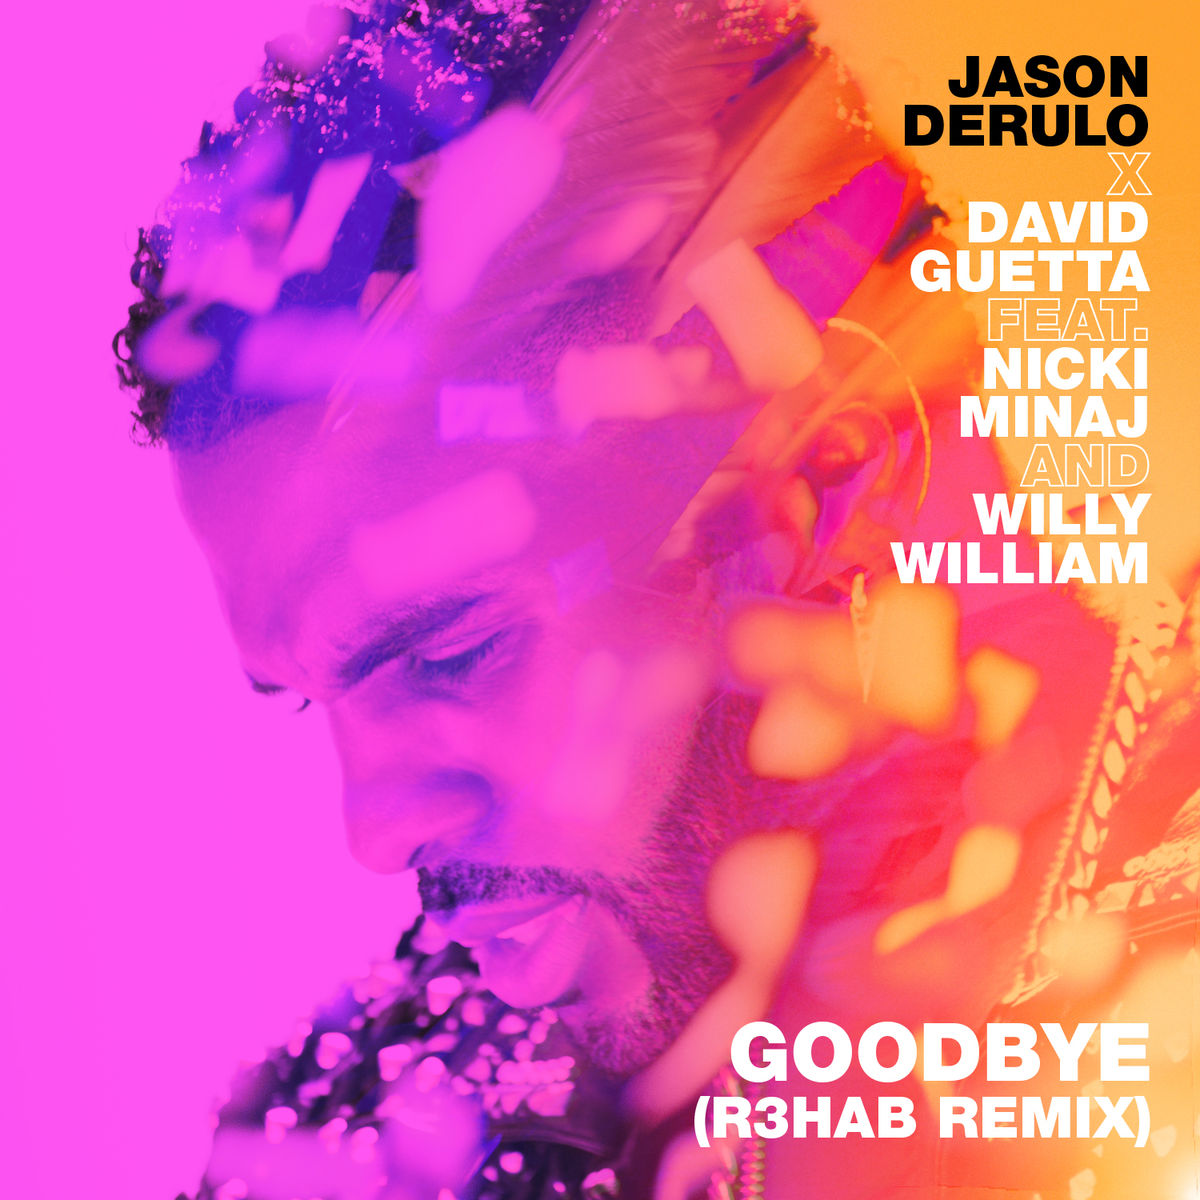 ultratop be - Jason Derulo x David Guetta feat  Nicki Minaj